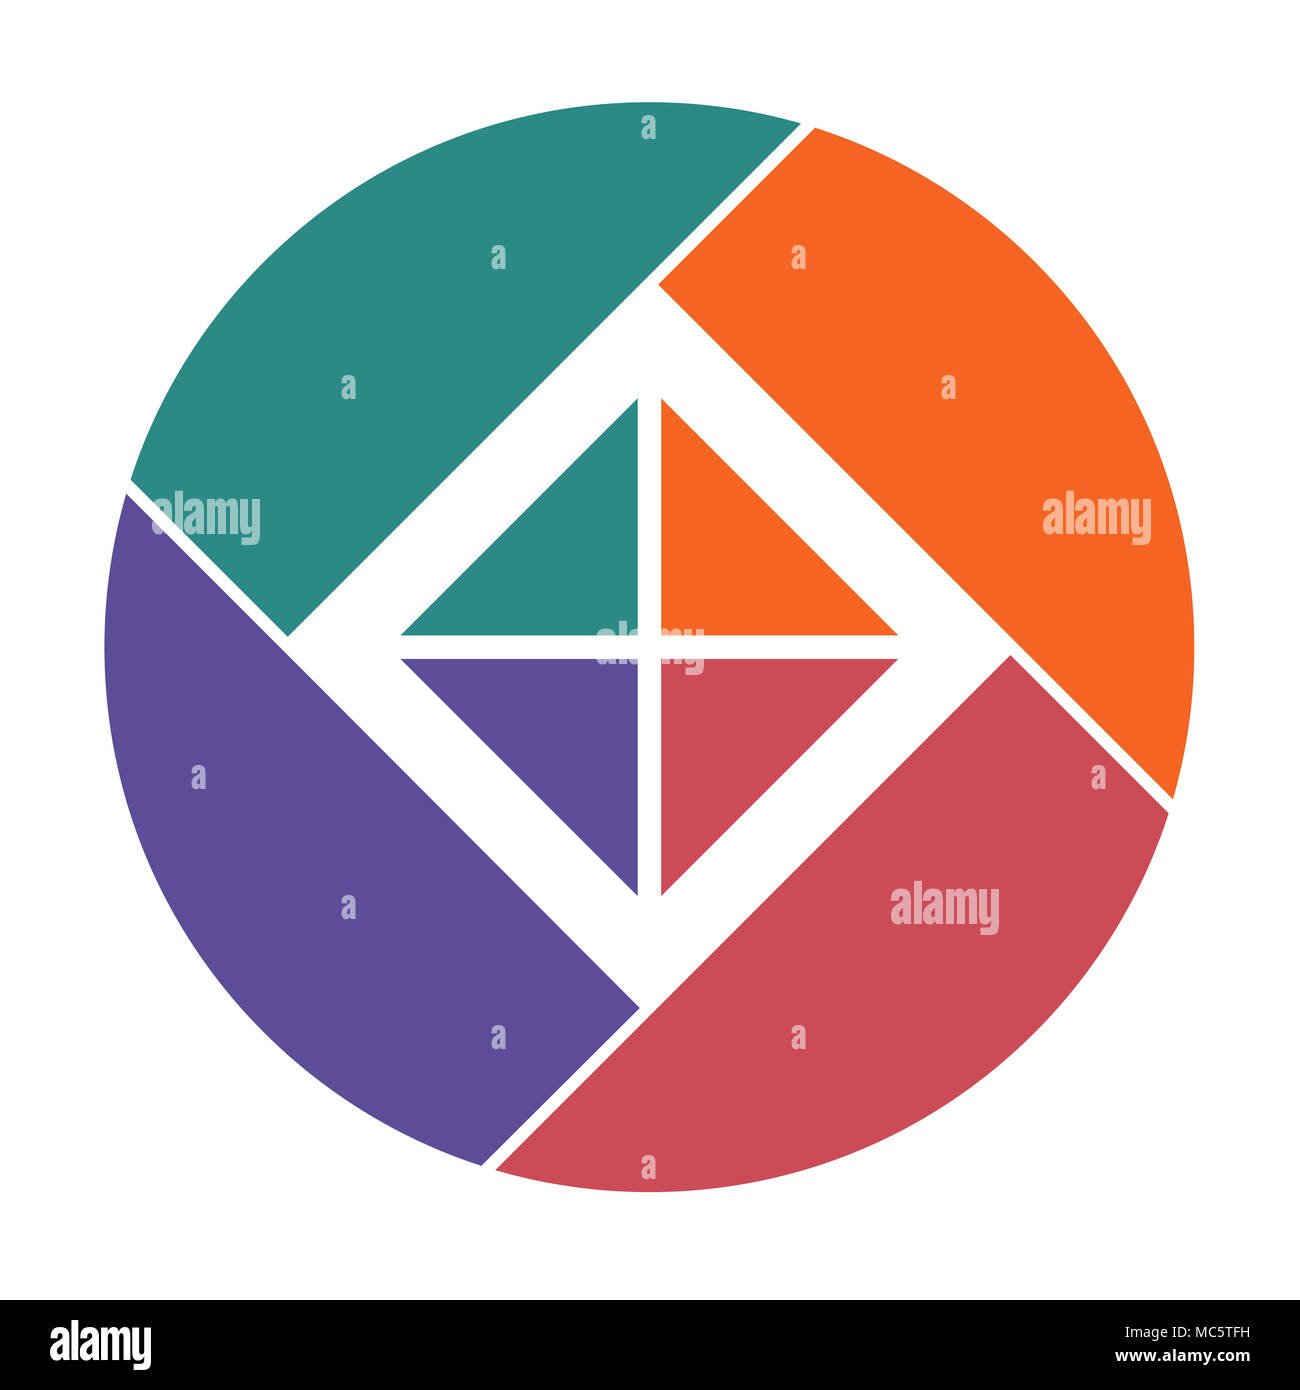 pie chart 4 stock photos pie chart 4 stock images alamy